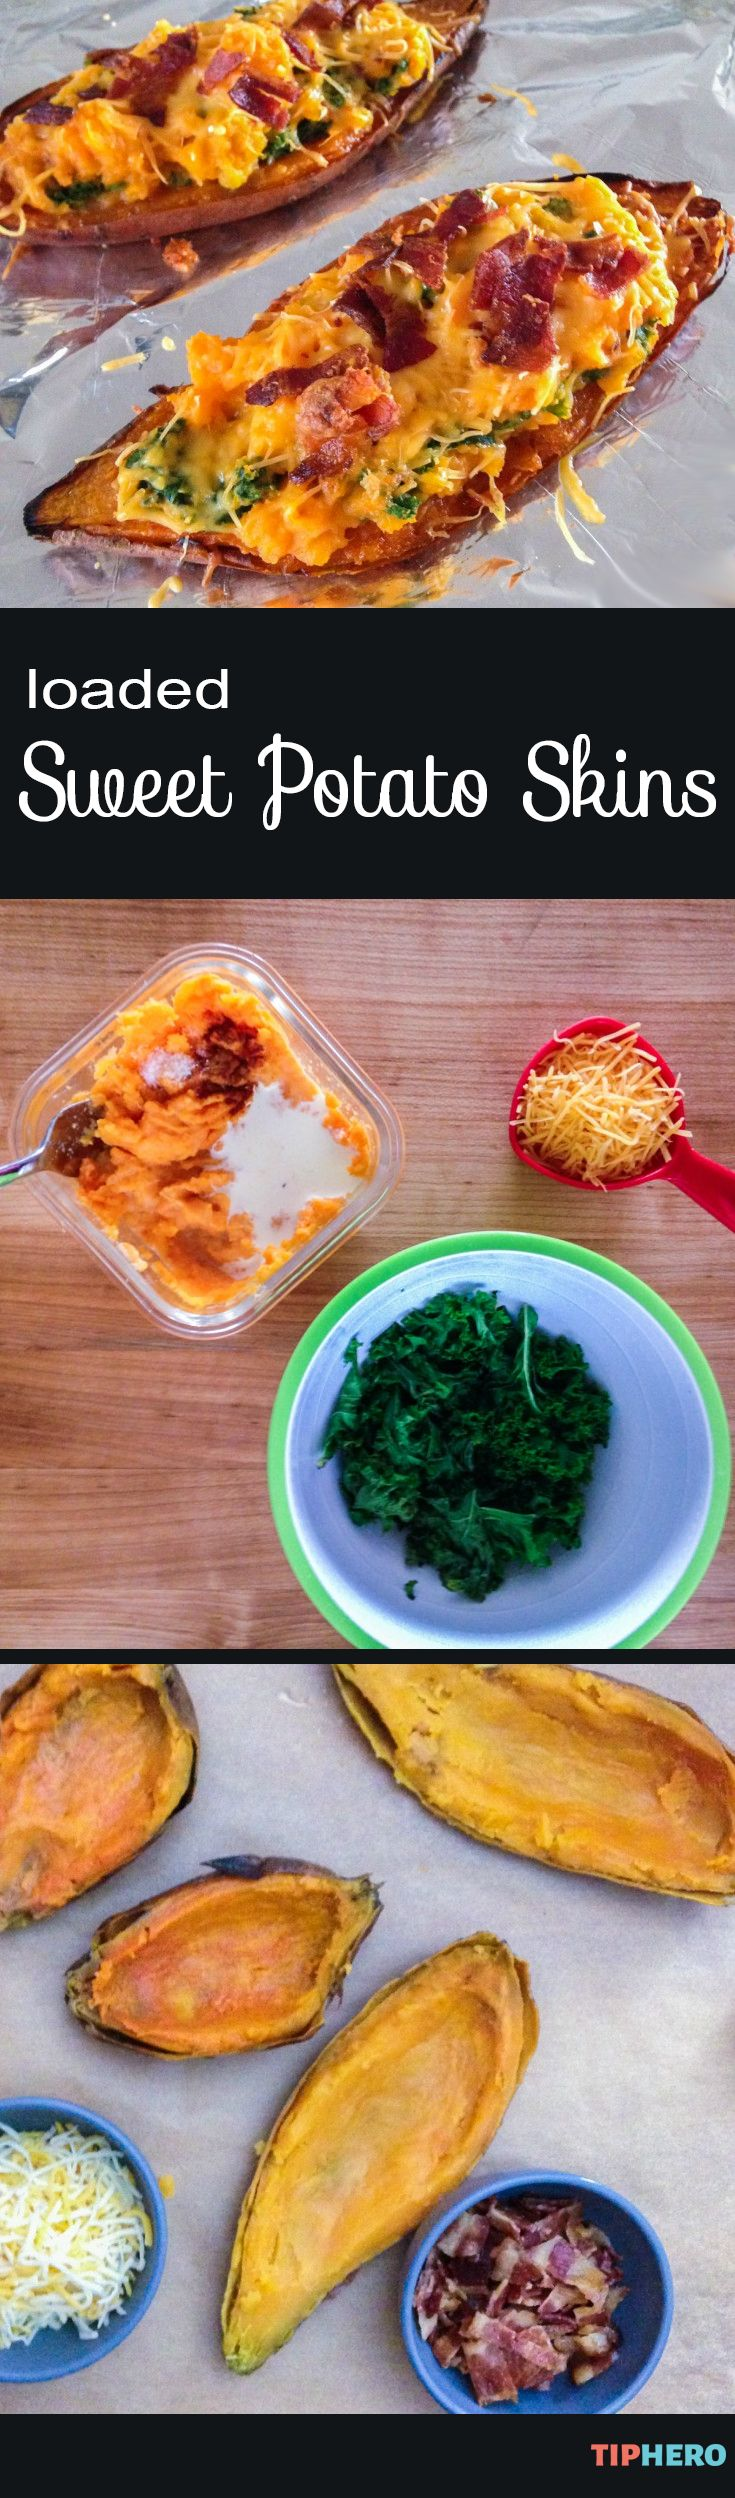 Loaded Sweet Potato Skins Recipe   Mmm-mmm.... what's not to love about these cheesy spuds? Topped with cheese, kale and crumbled bacon they're as good as the real things but with a sweet potato base so they are a little sweeter and a little better for you. Click for the recipe. #sides #homecooking #easyrecipes #partyfood